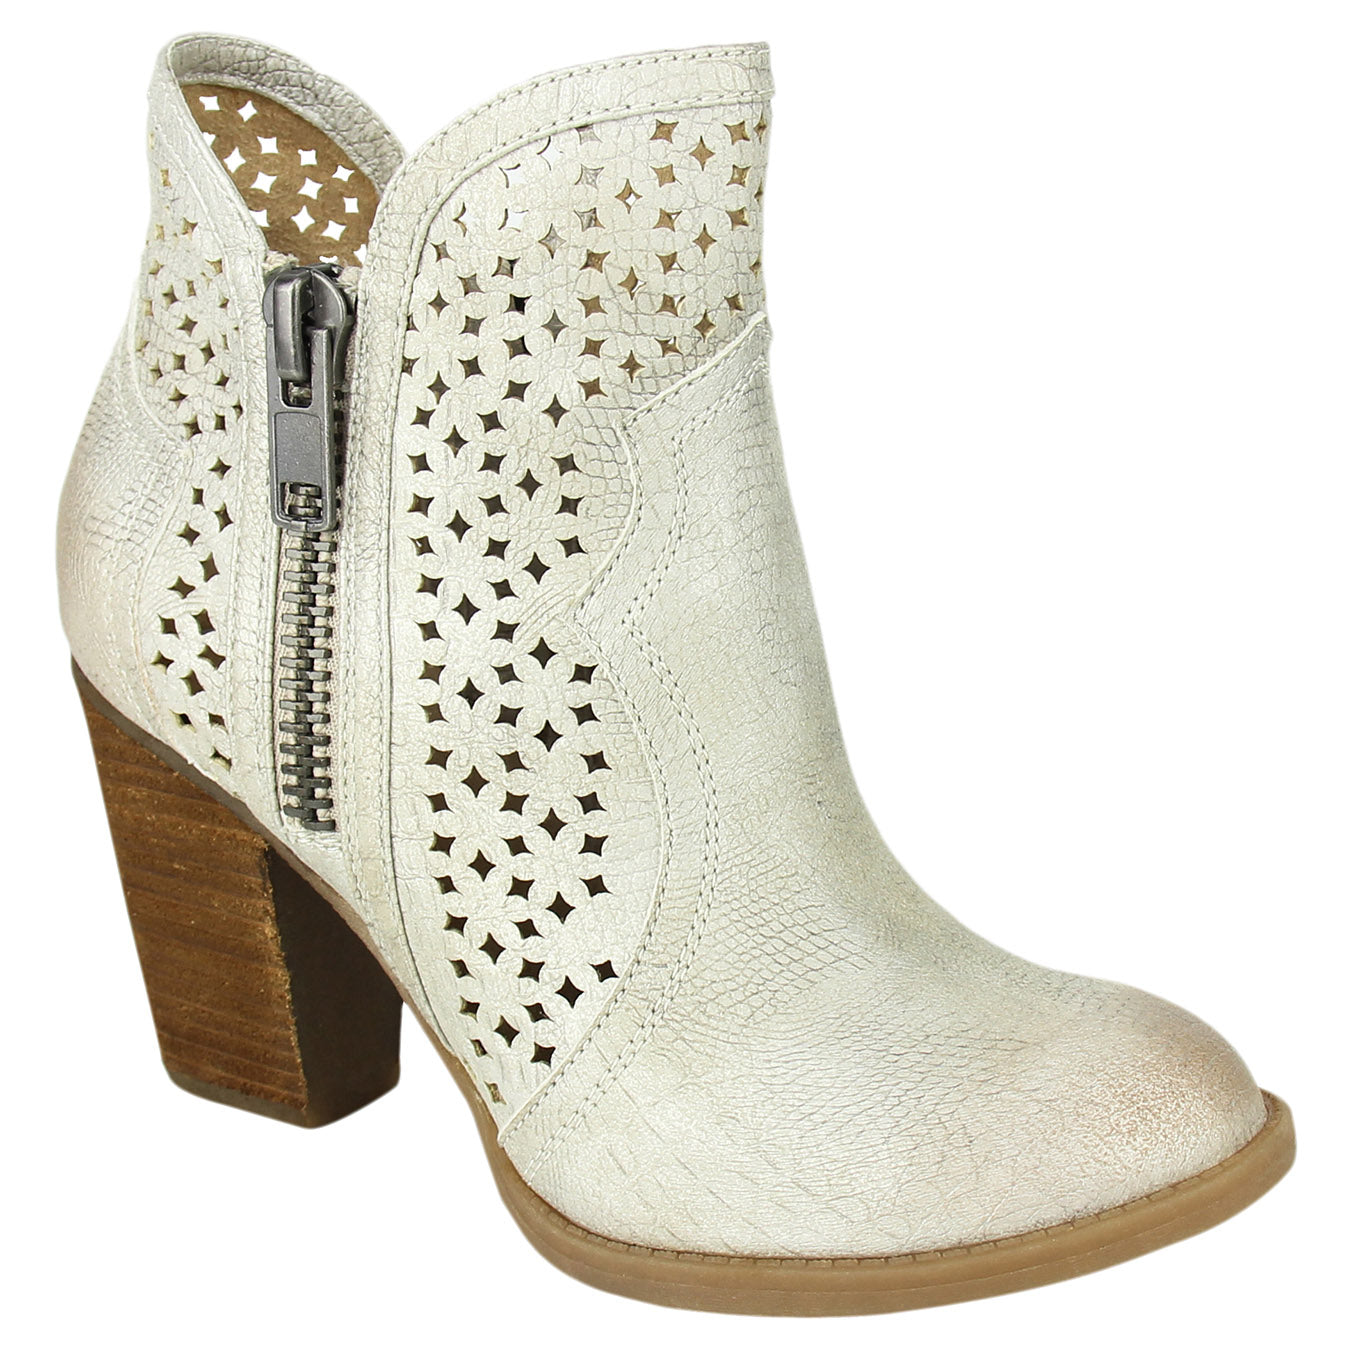 Not_Rated_bootie_cream_heel_cut_outs_women's_Gretchen